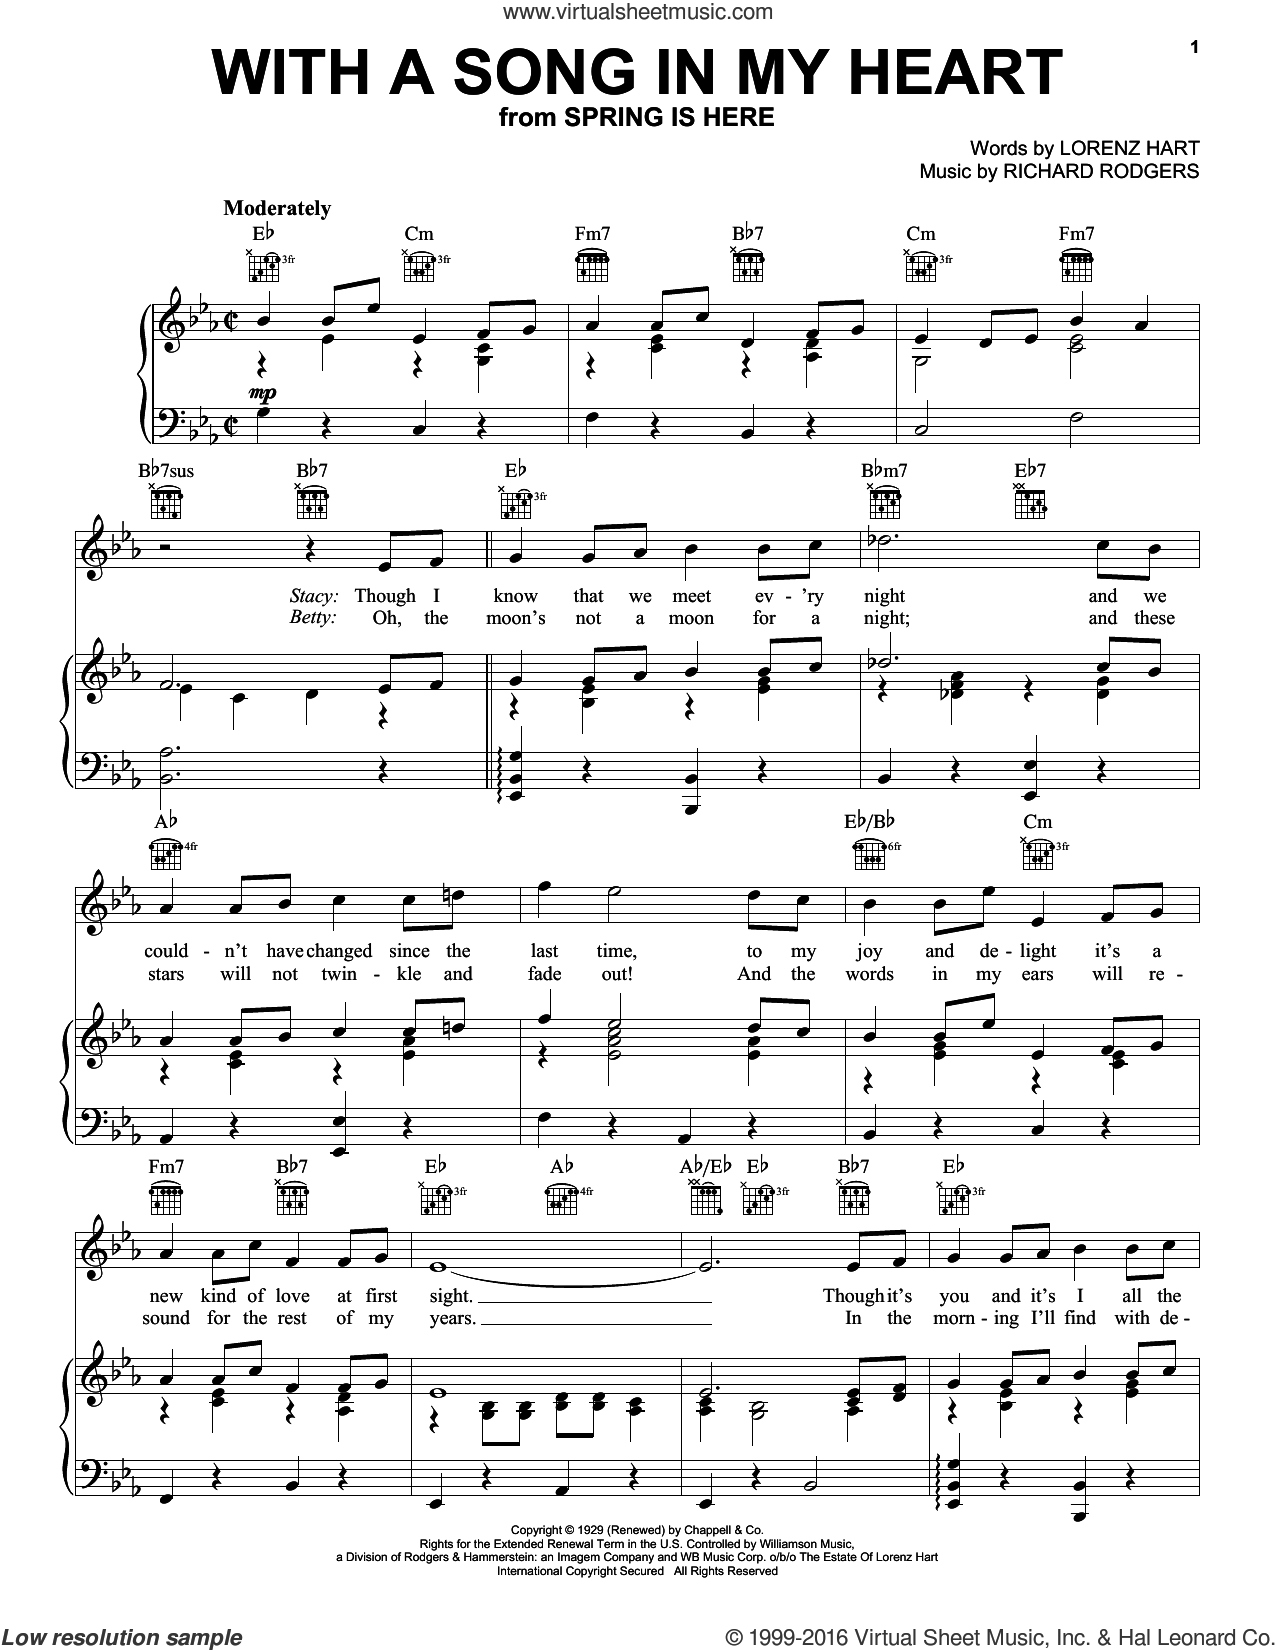 With A Song In My Heart sheet music for voice, piano or guitar by Rodgers & Hart, Lorenz Hart and Richard Rodgers, intermediate skill level